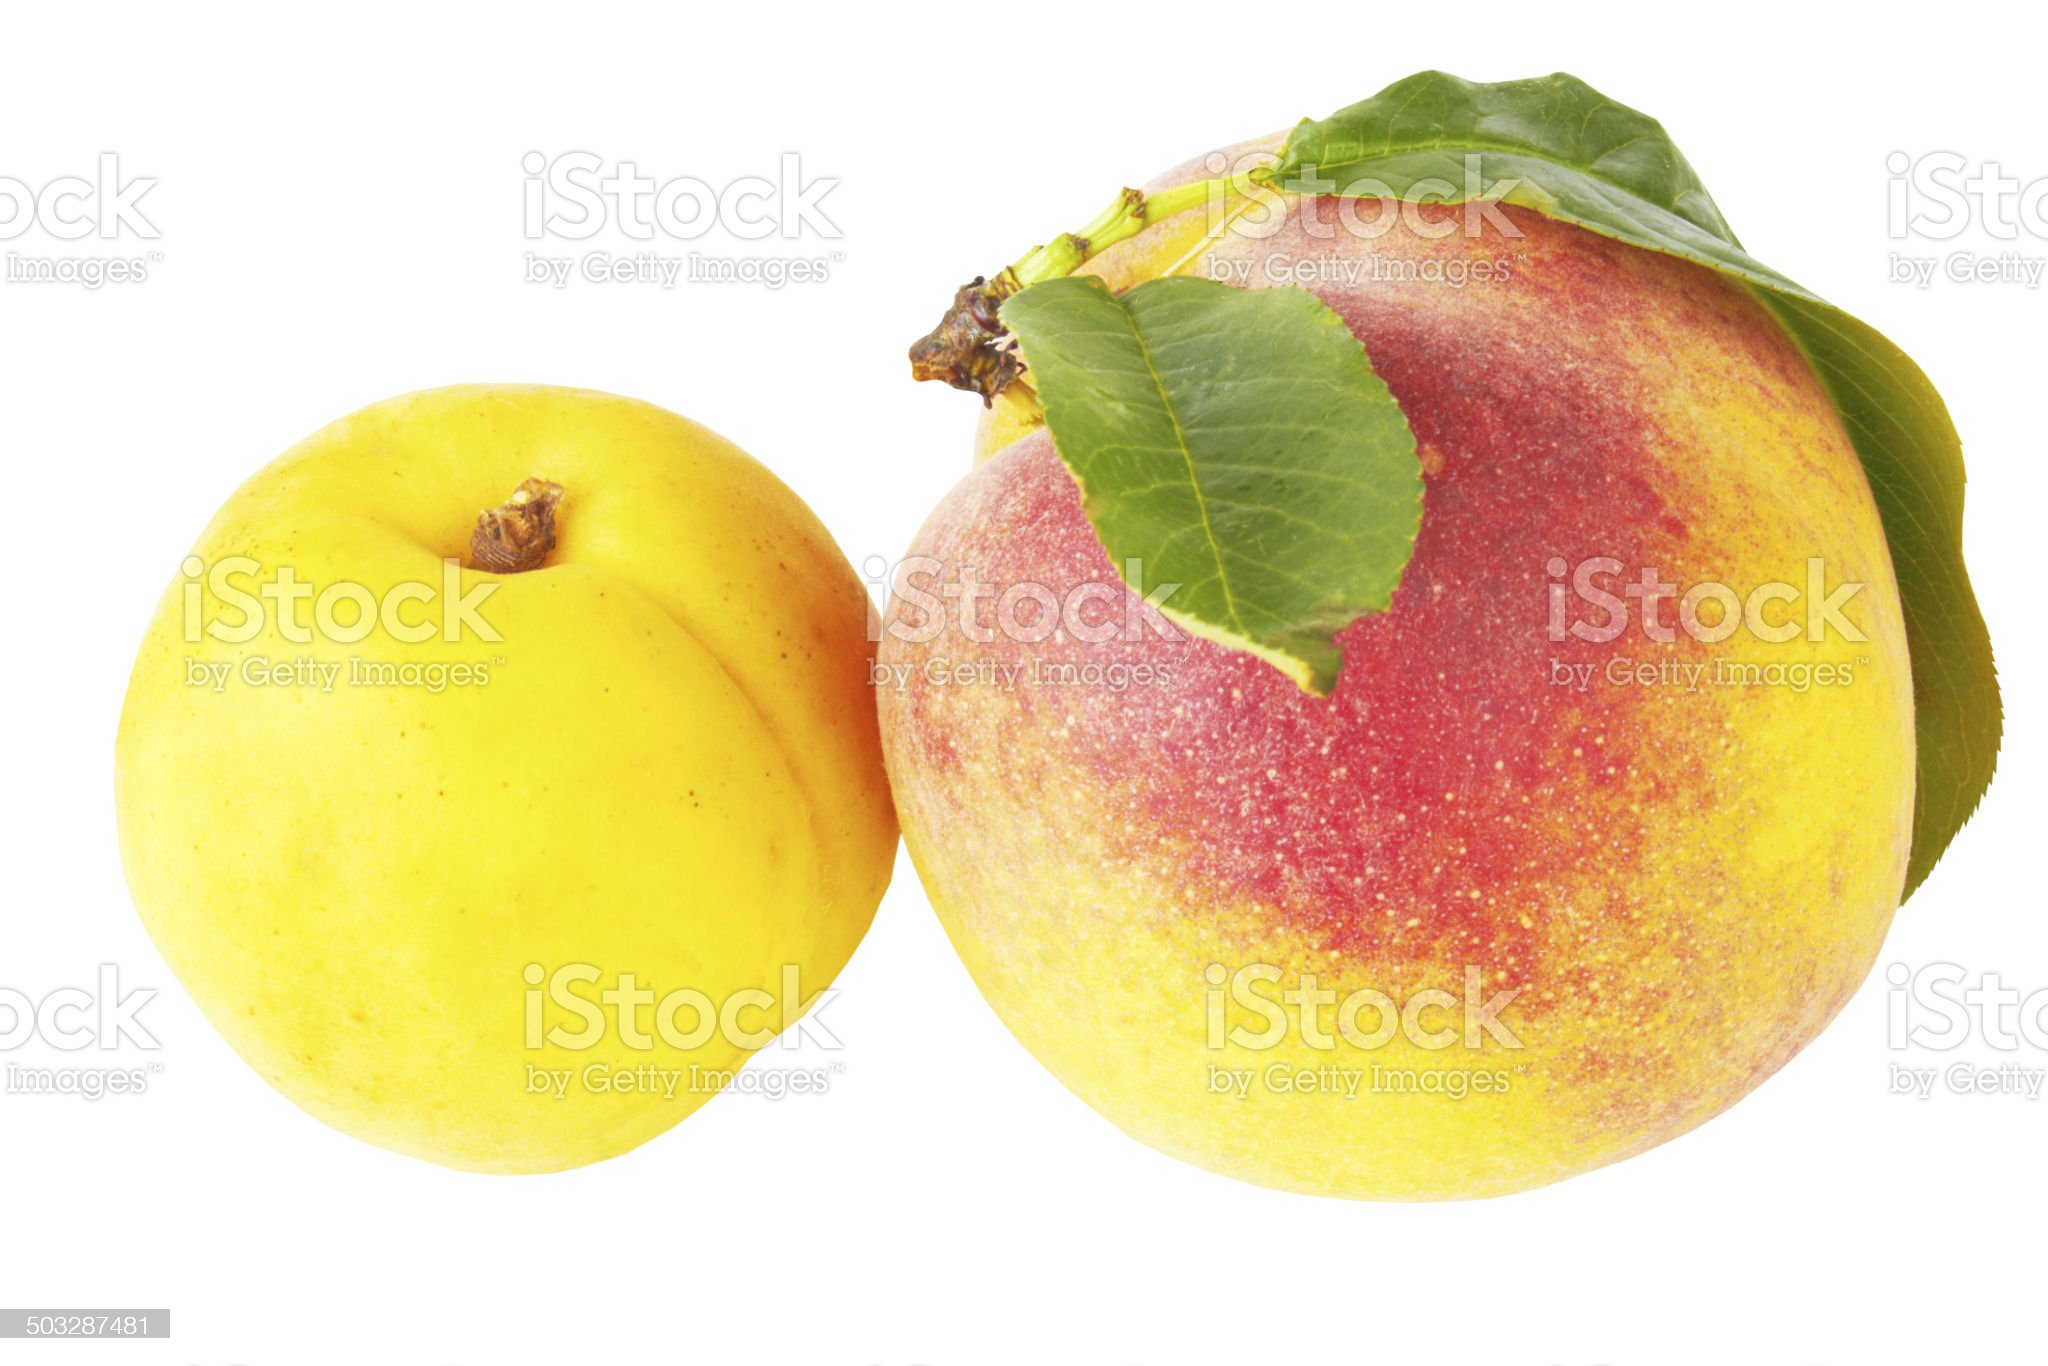 peach and apricot royalty-free stock photo